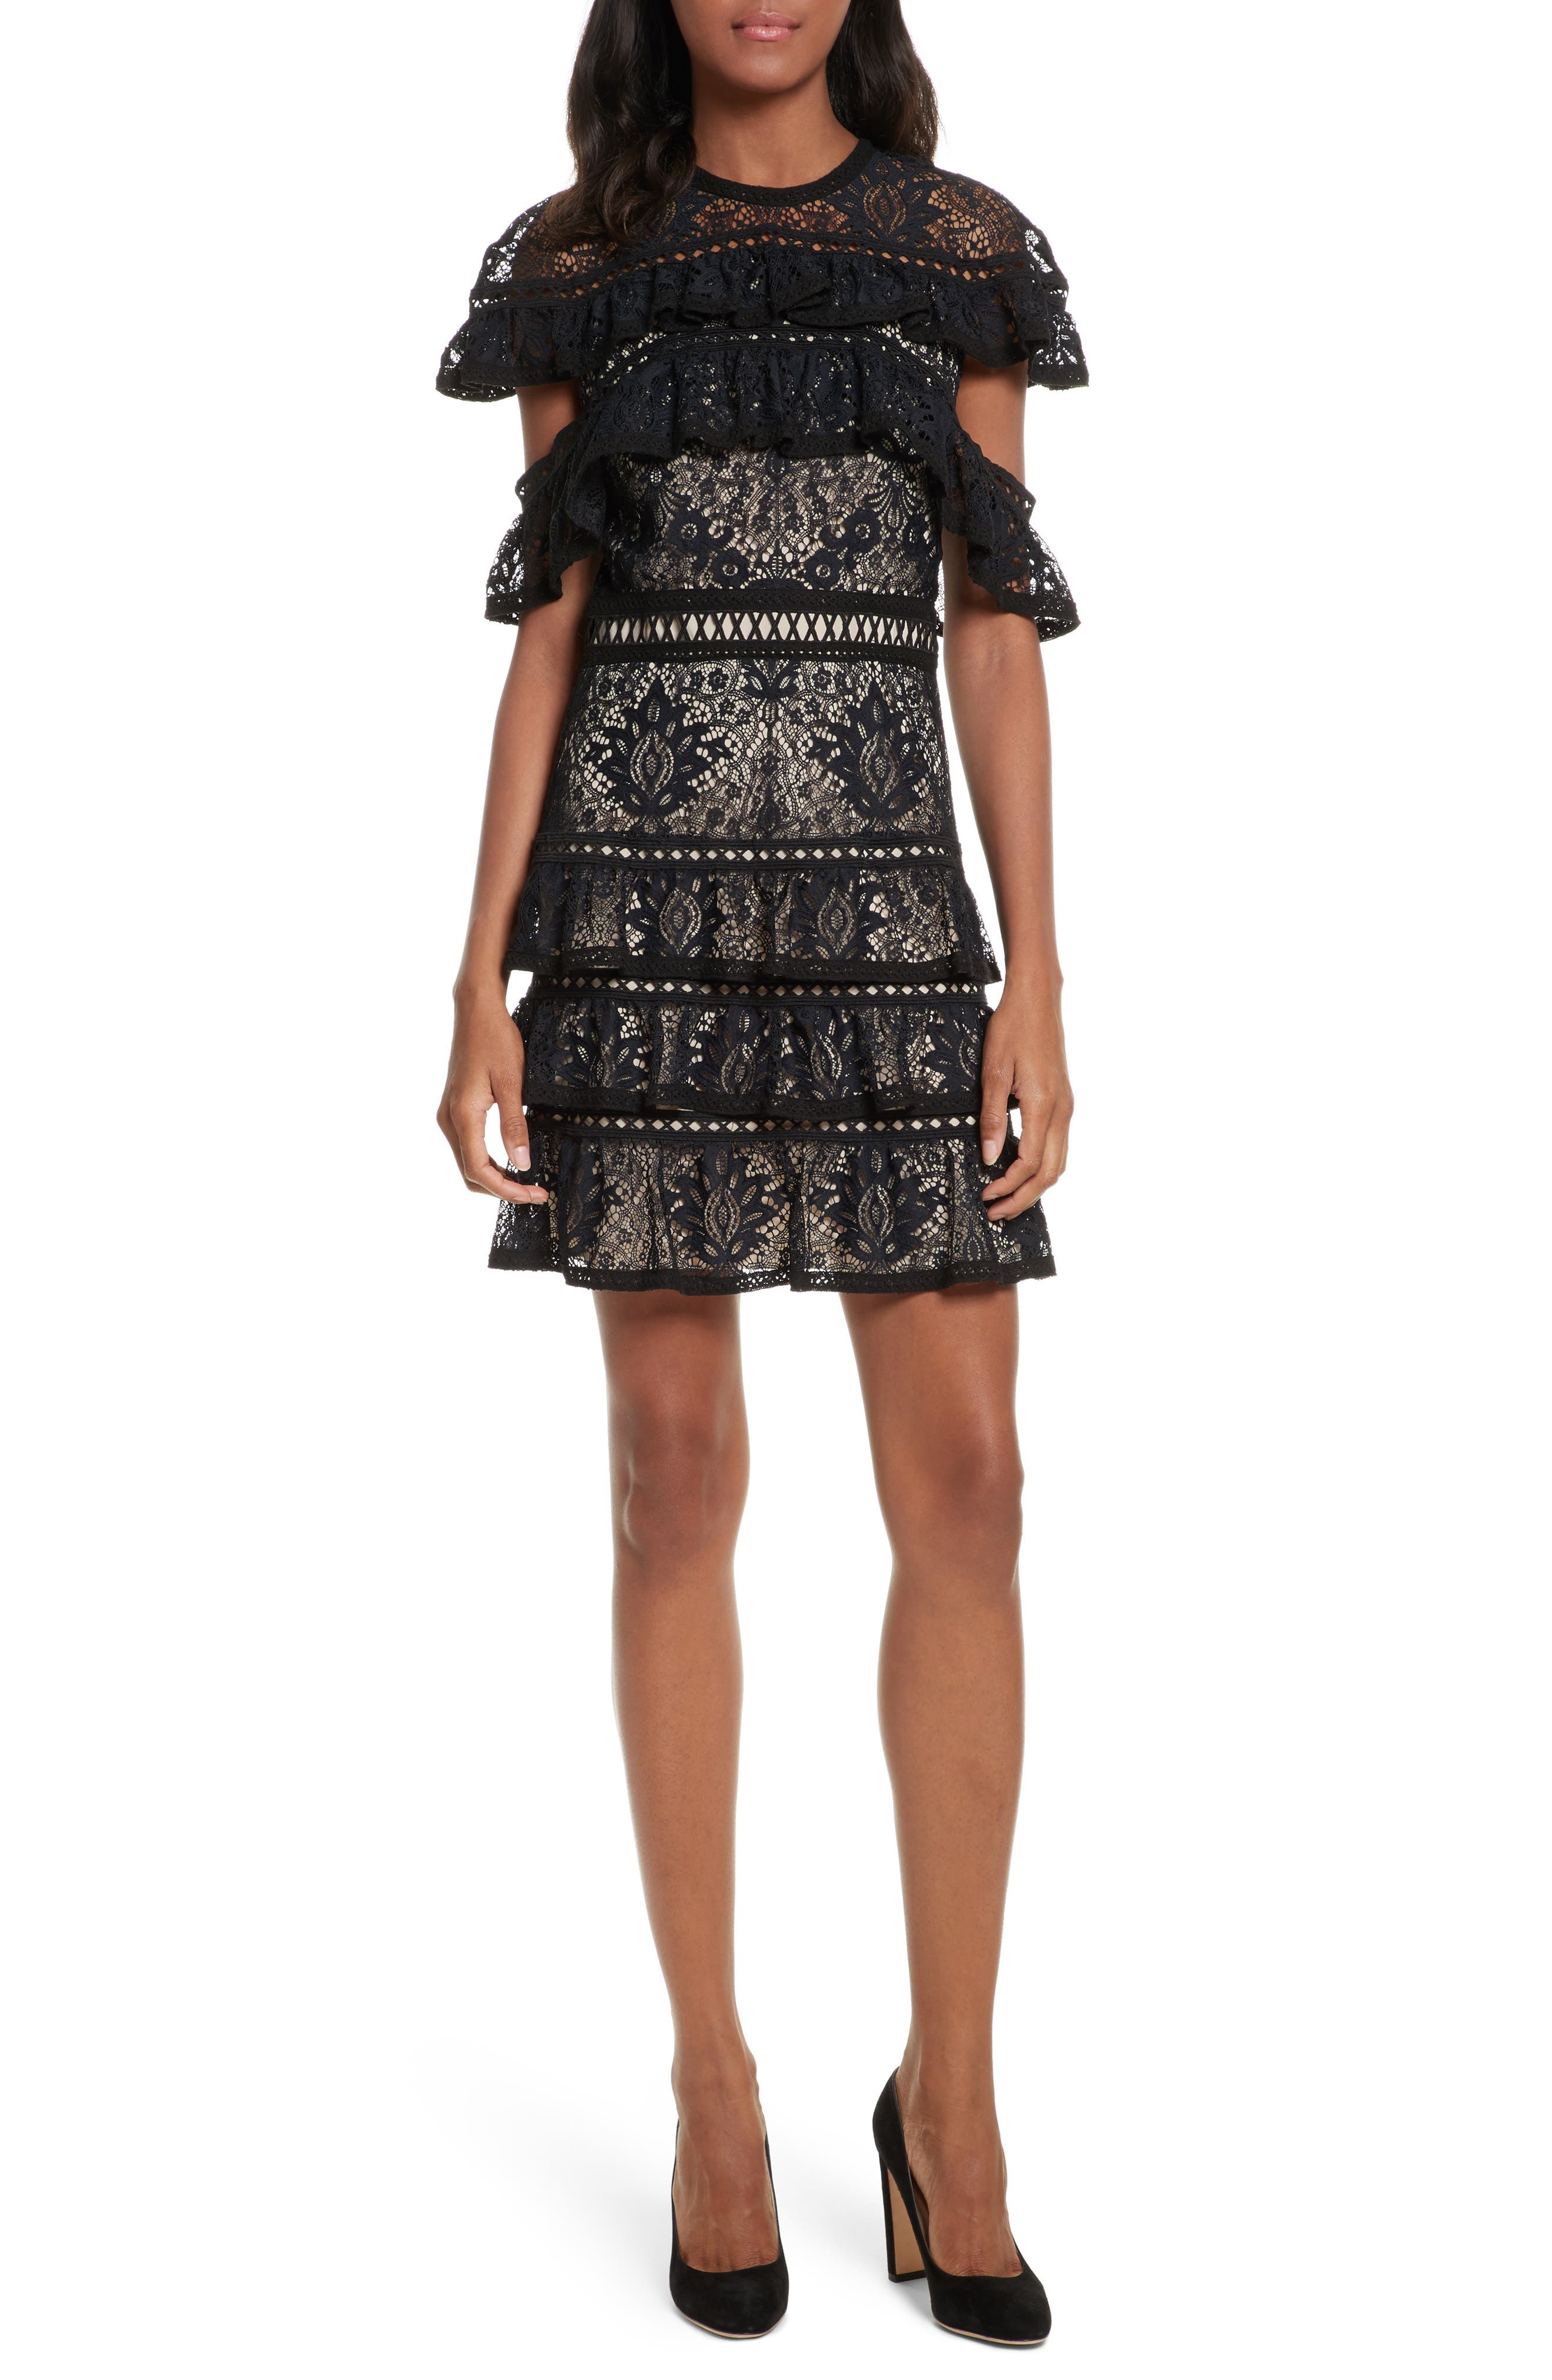 Alice olivia cocktail party dresses nordstrom ombrellifo Images